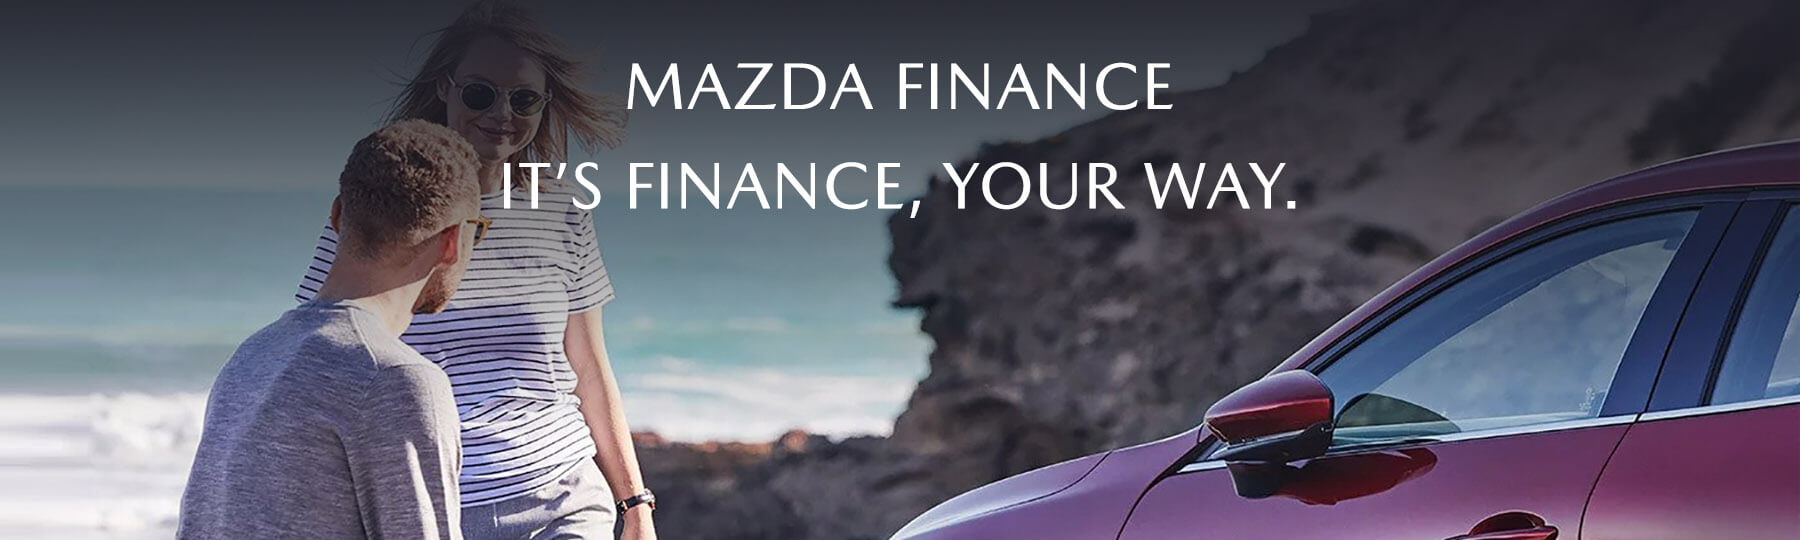 Mazda Finance Guaranteed Future Value